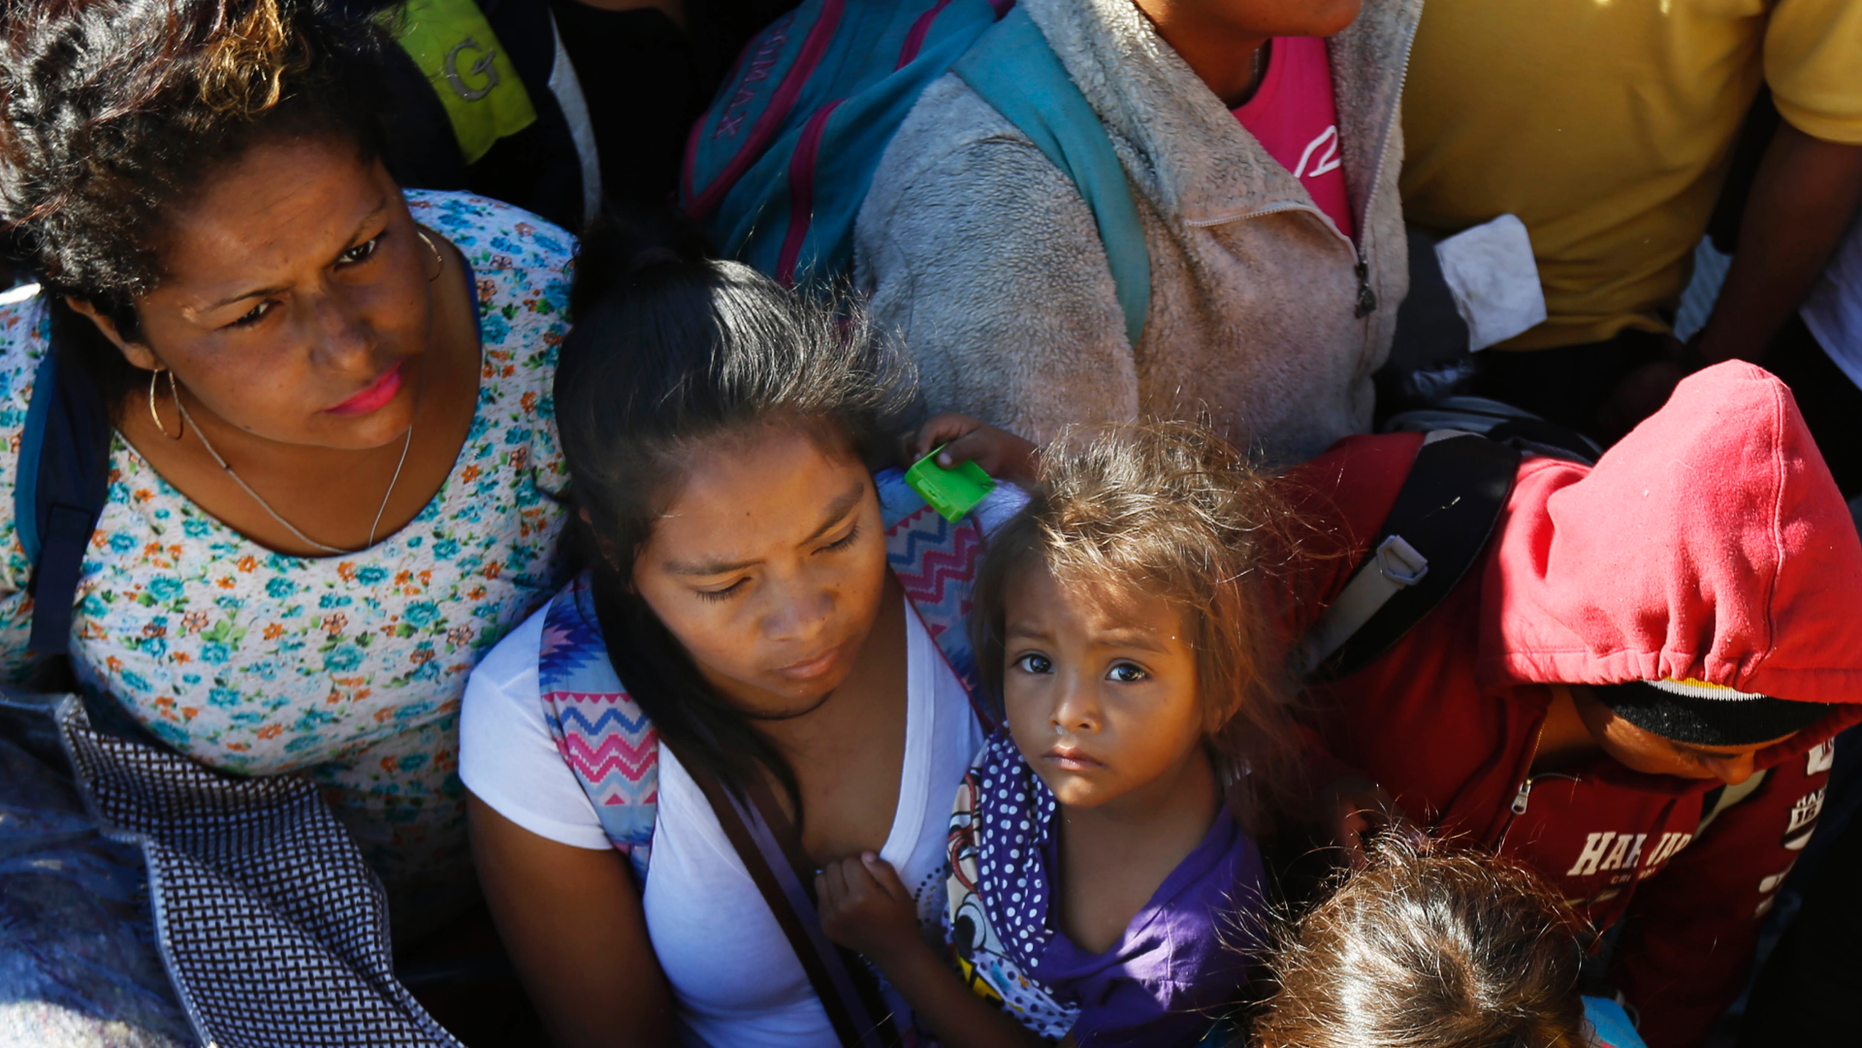 Migrants traveling with a caravan hoping to reach the U.S. border, wait to board a bus in La Concha, Mexico, Wednesday, Nov. 14, 2018. Buses and trucks are carrying some migrants into the state of Sinaloa along the Gulf of California and further northward into the border state of Sonora. The bulk of the main caravan appeared to be about 1,100 miles from the border, but was moving hundreds of miles per day. (AP Photo/Marco Ugarte)